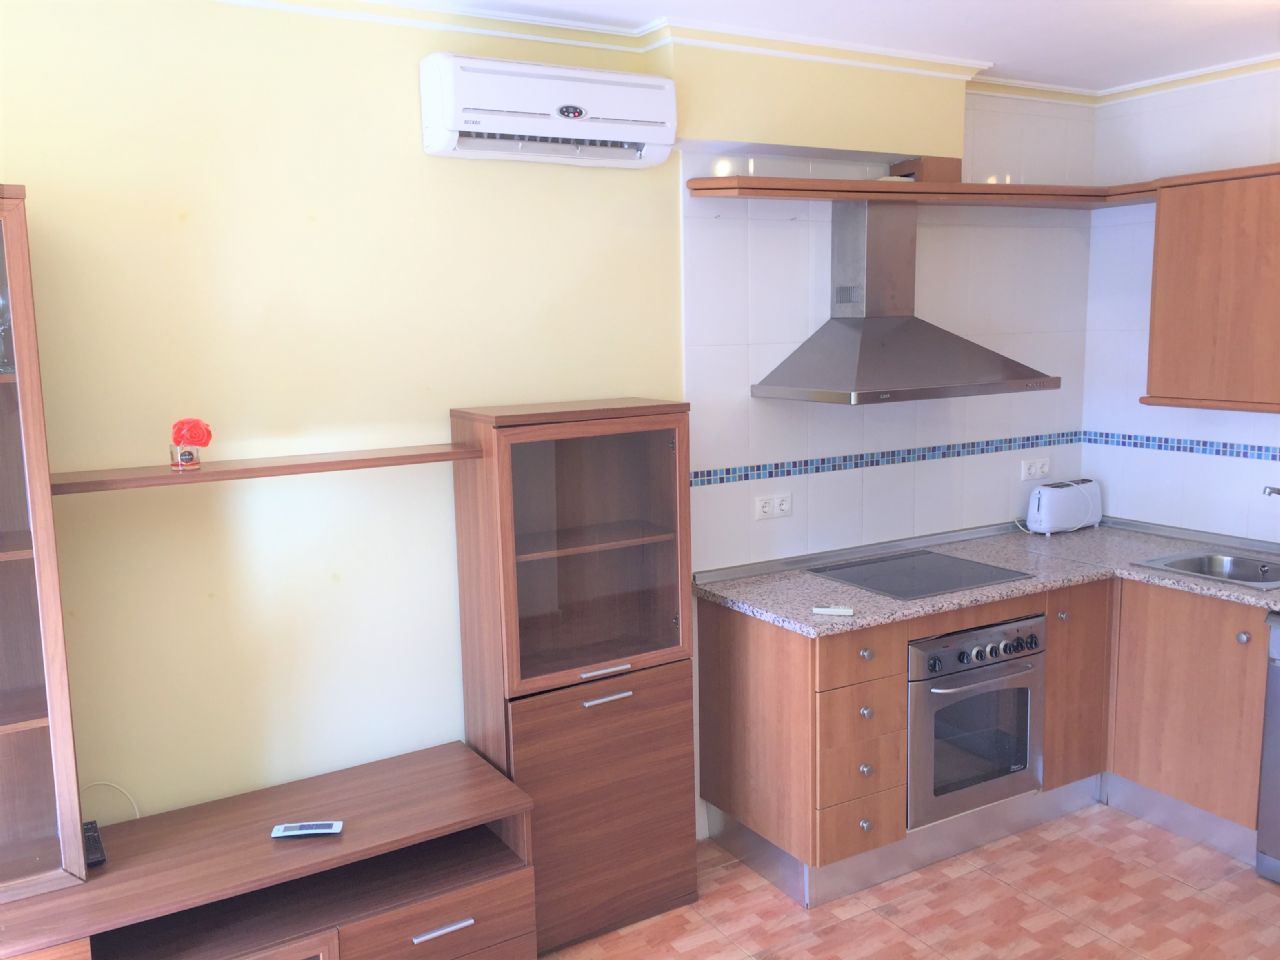 Penthouse in Fuengirola, Los Boliches, for sale